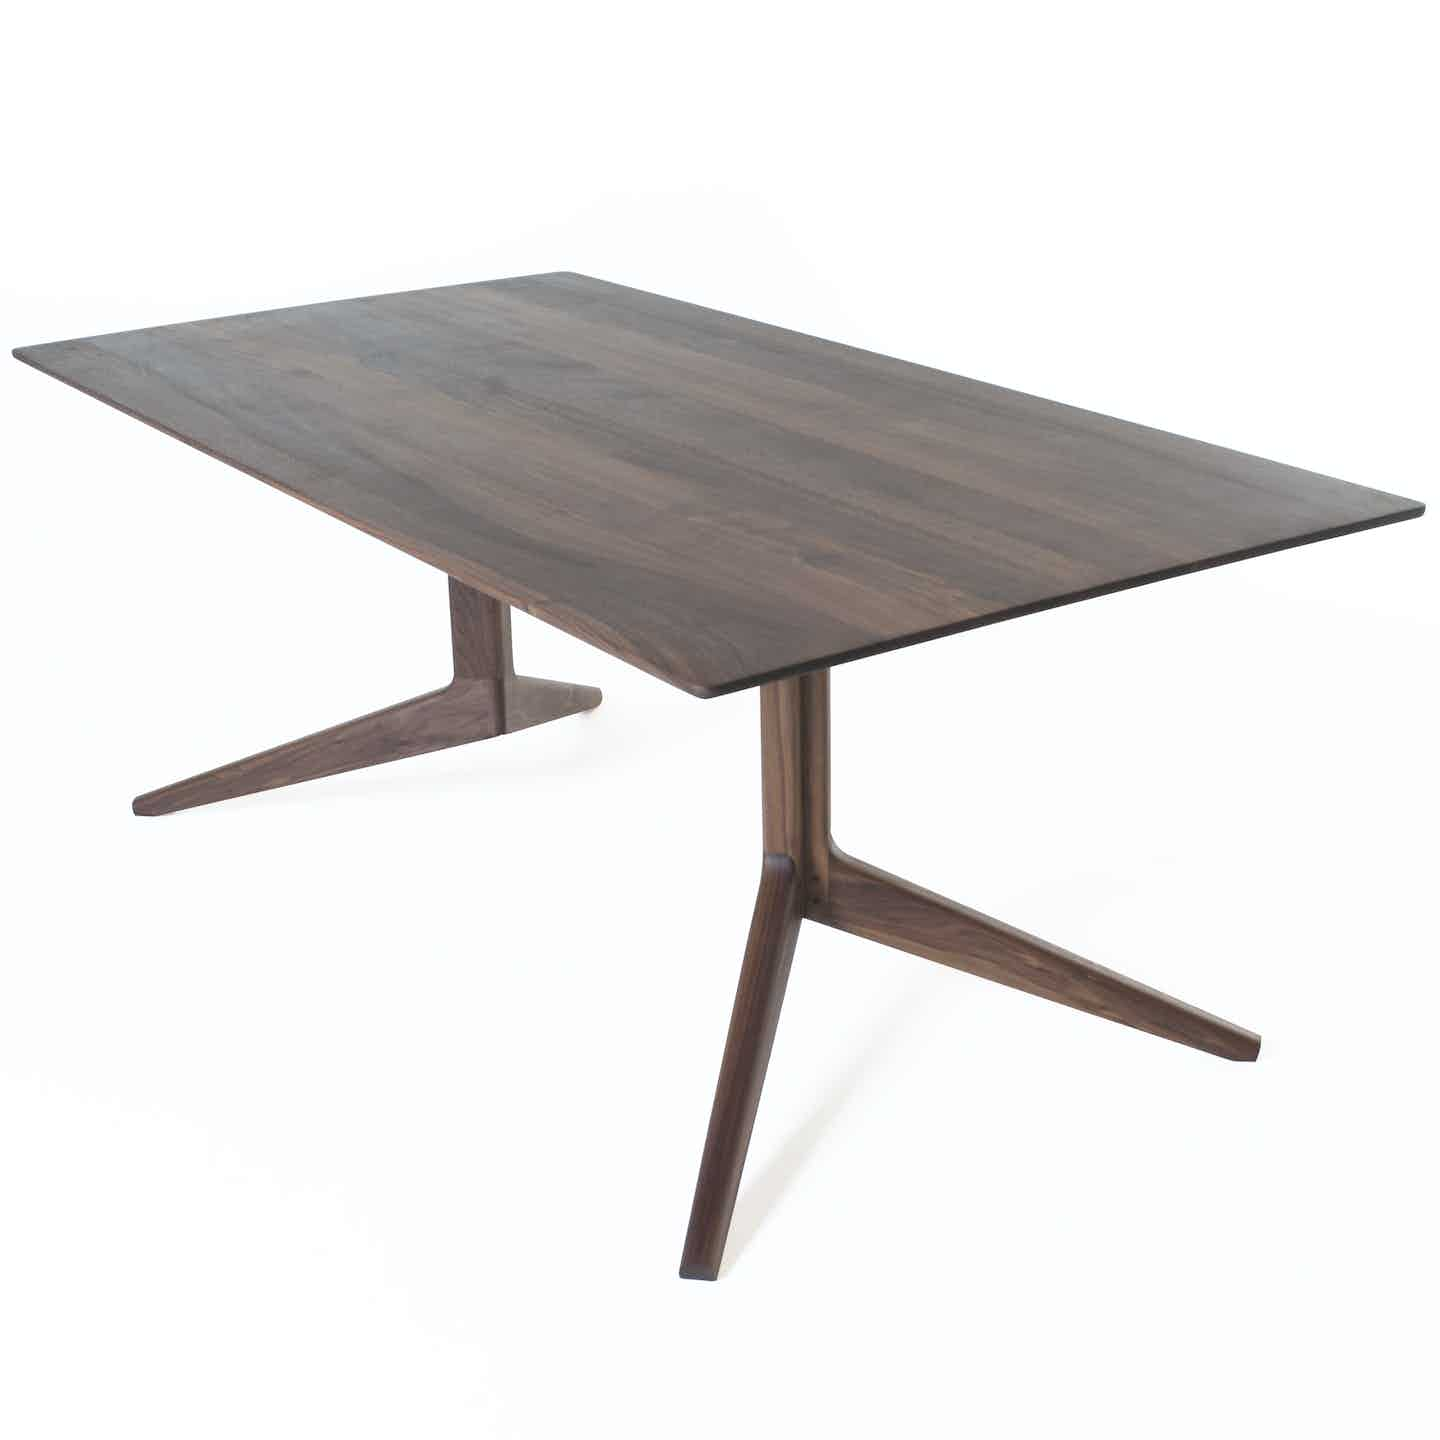 De La Espada Matthew Hilton Light Rectangular Table Thumbnail Haute Living